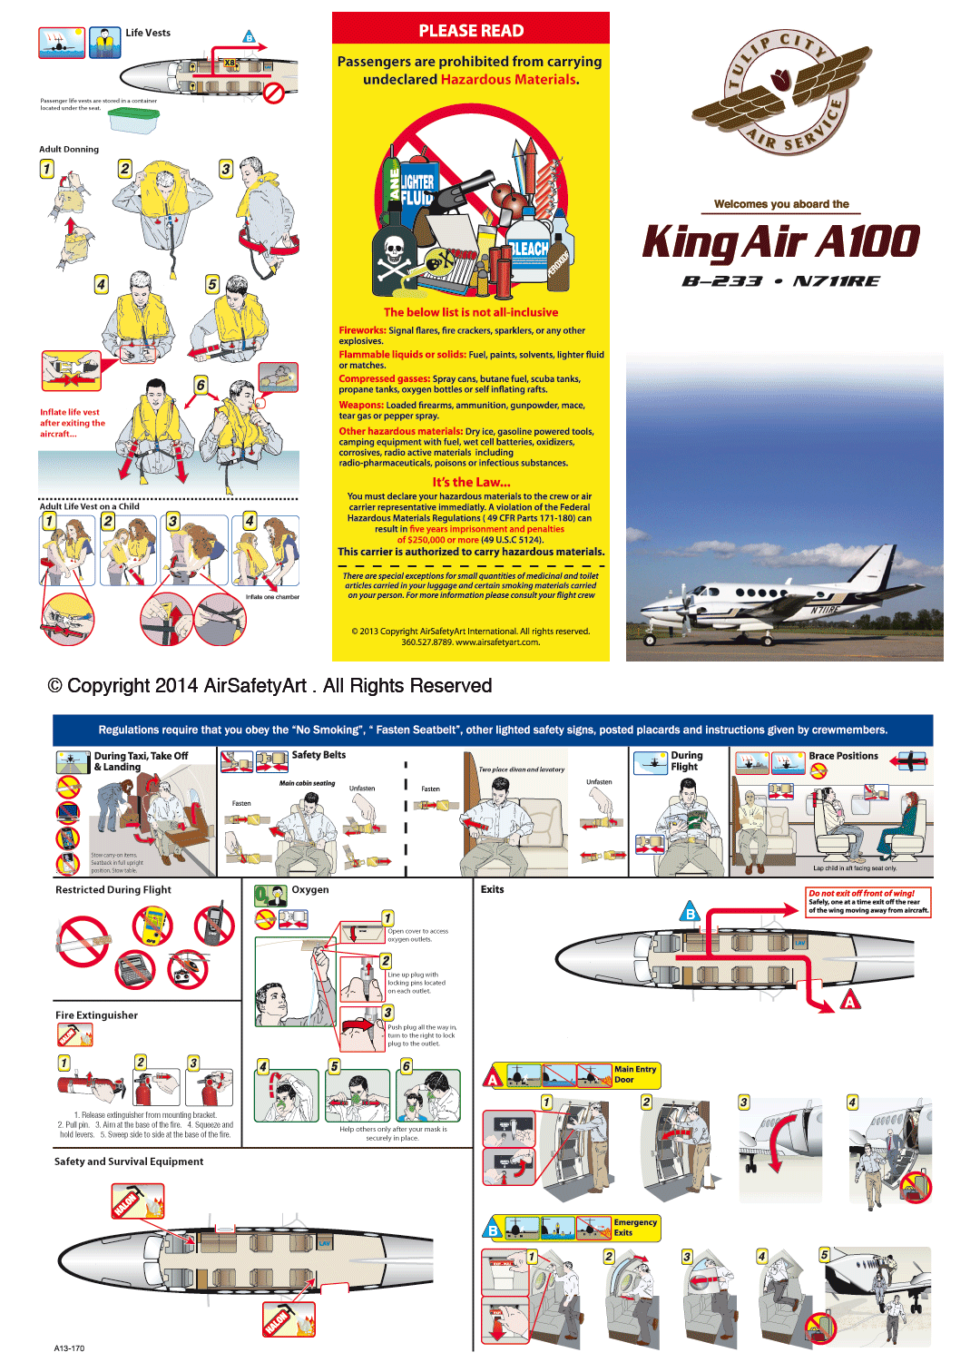 Beechcraft King Air A100 Safety Briefing Card